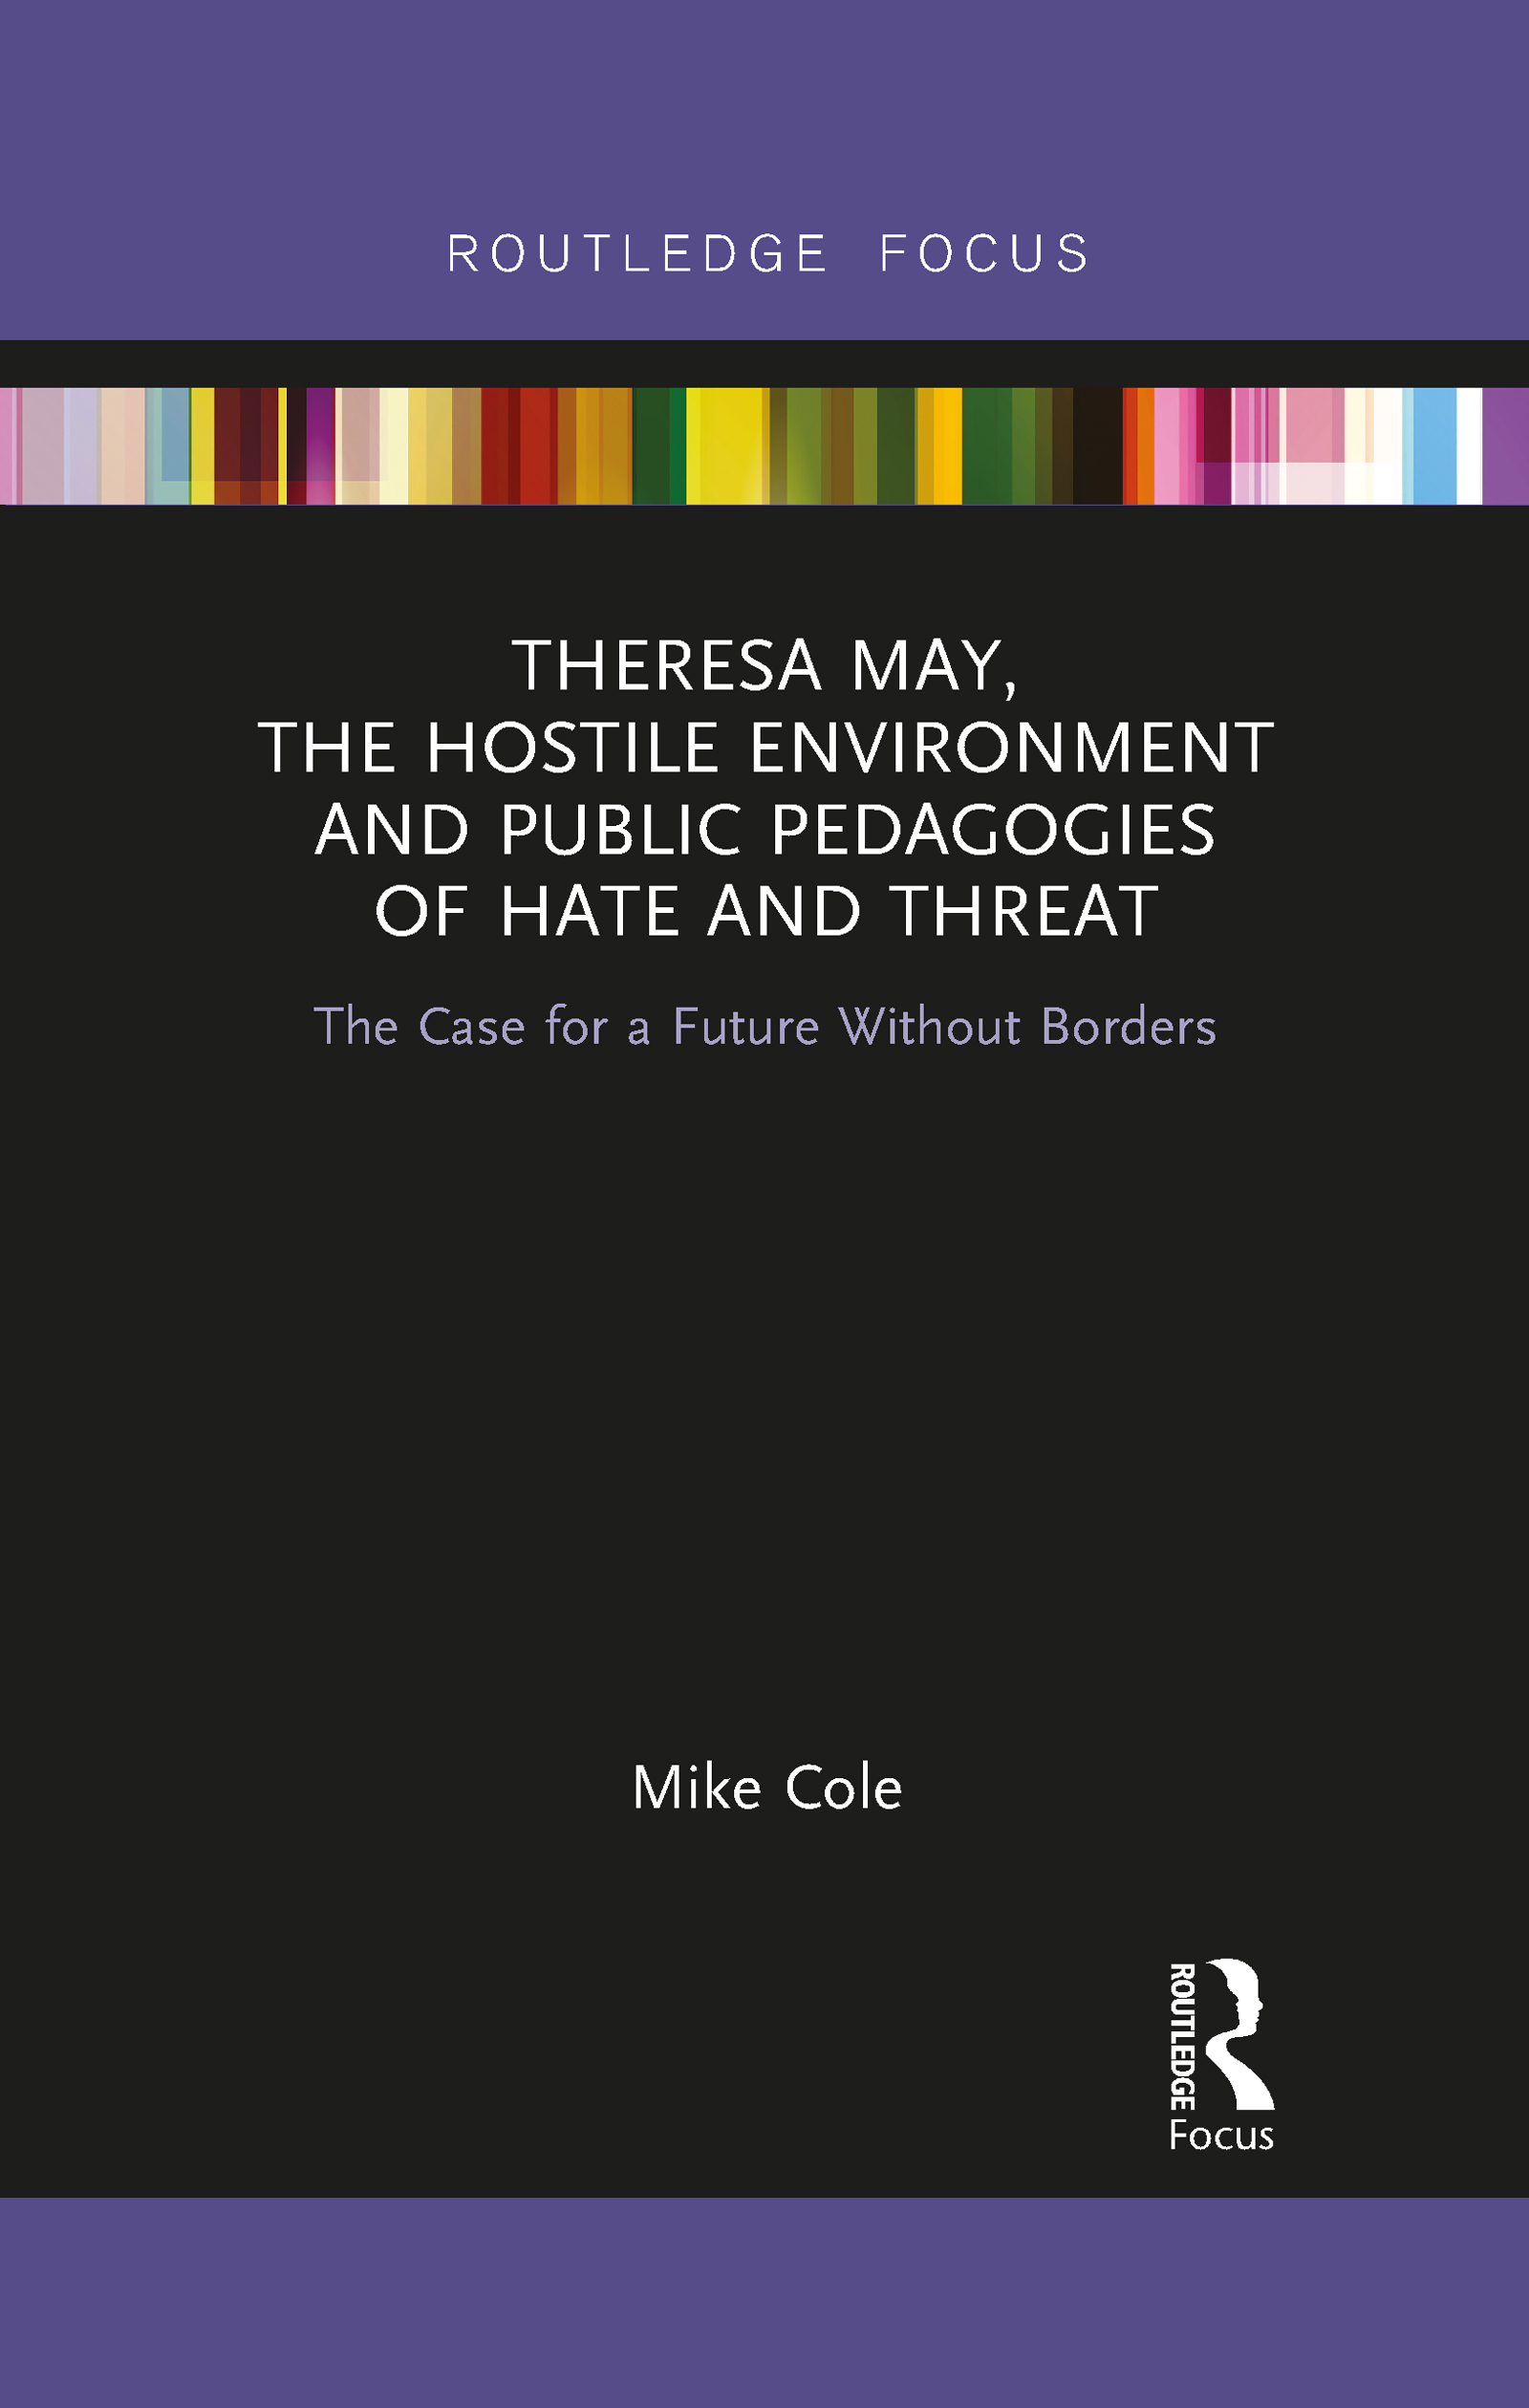 Theresa May, The Hostile Environment and Public Pedagogies of Hate and Threat